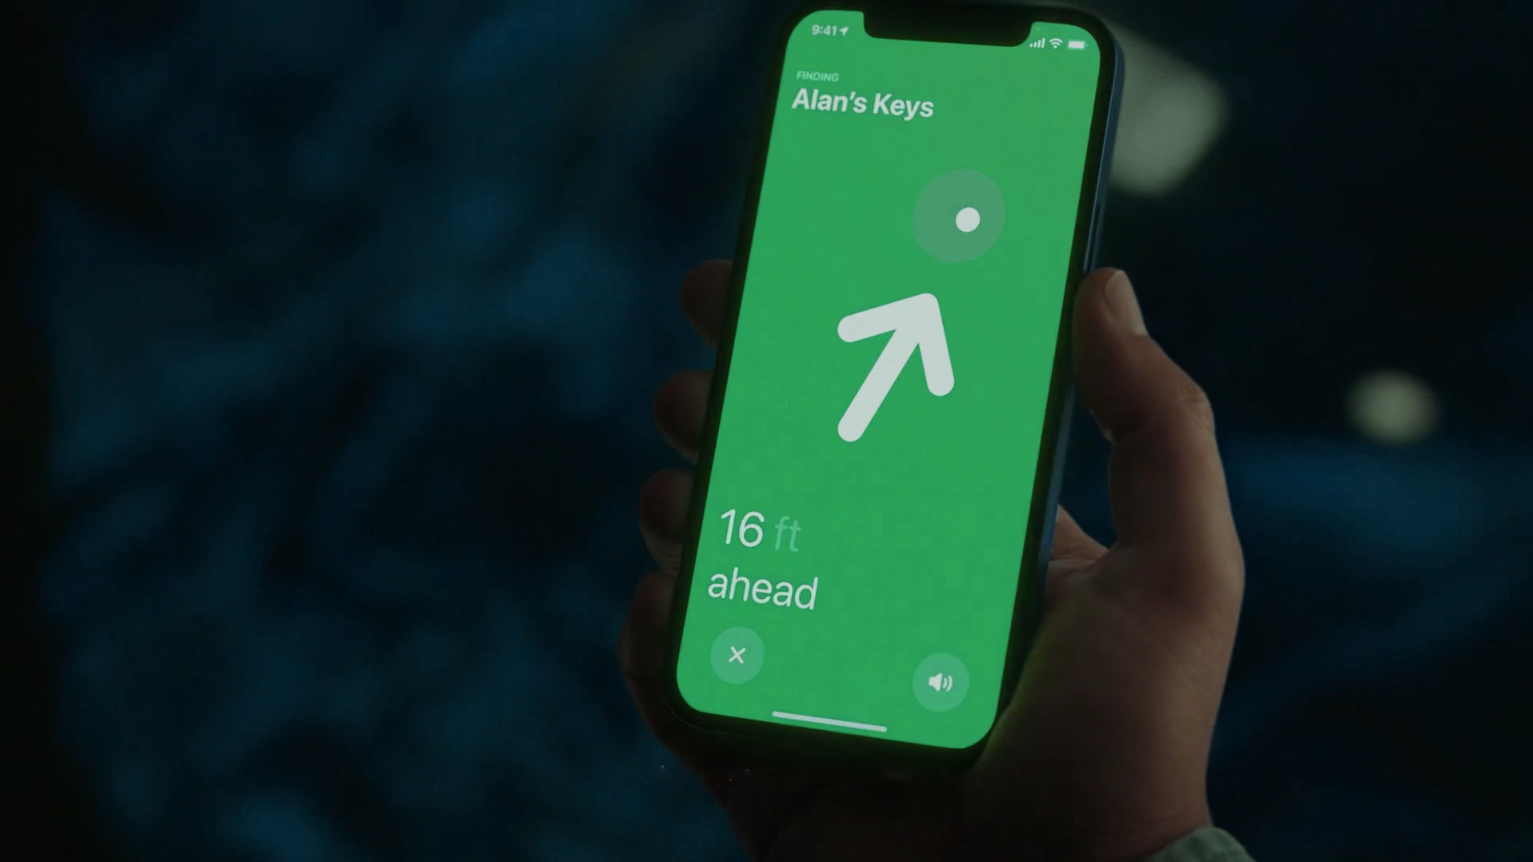 apple 2021 april products - airtags iphone interface find my app